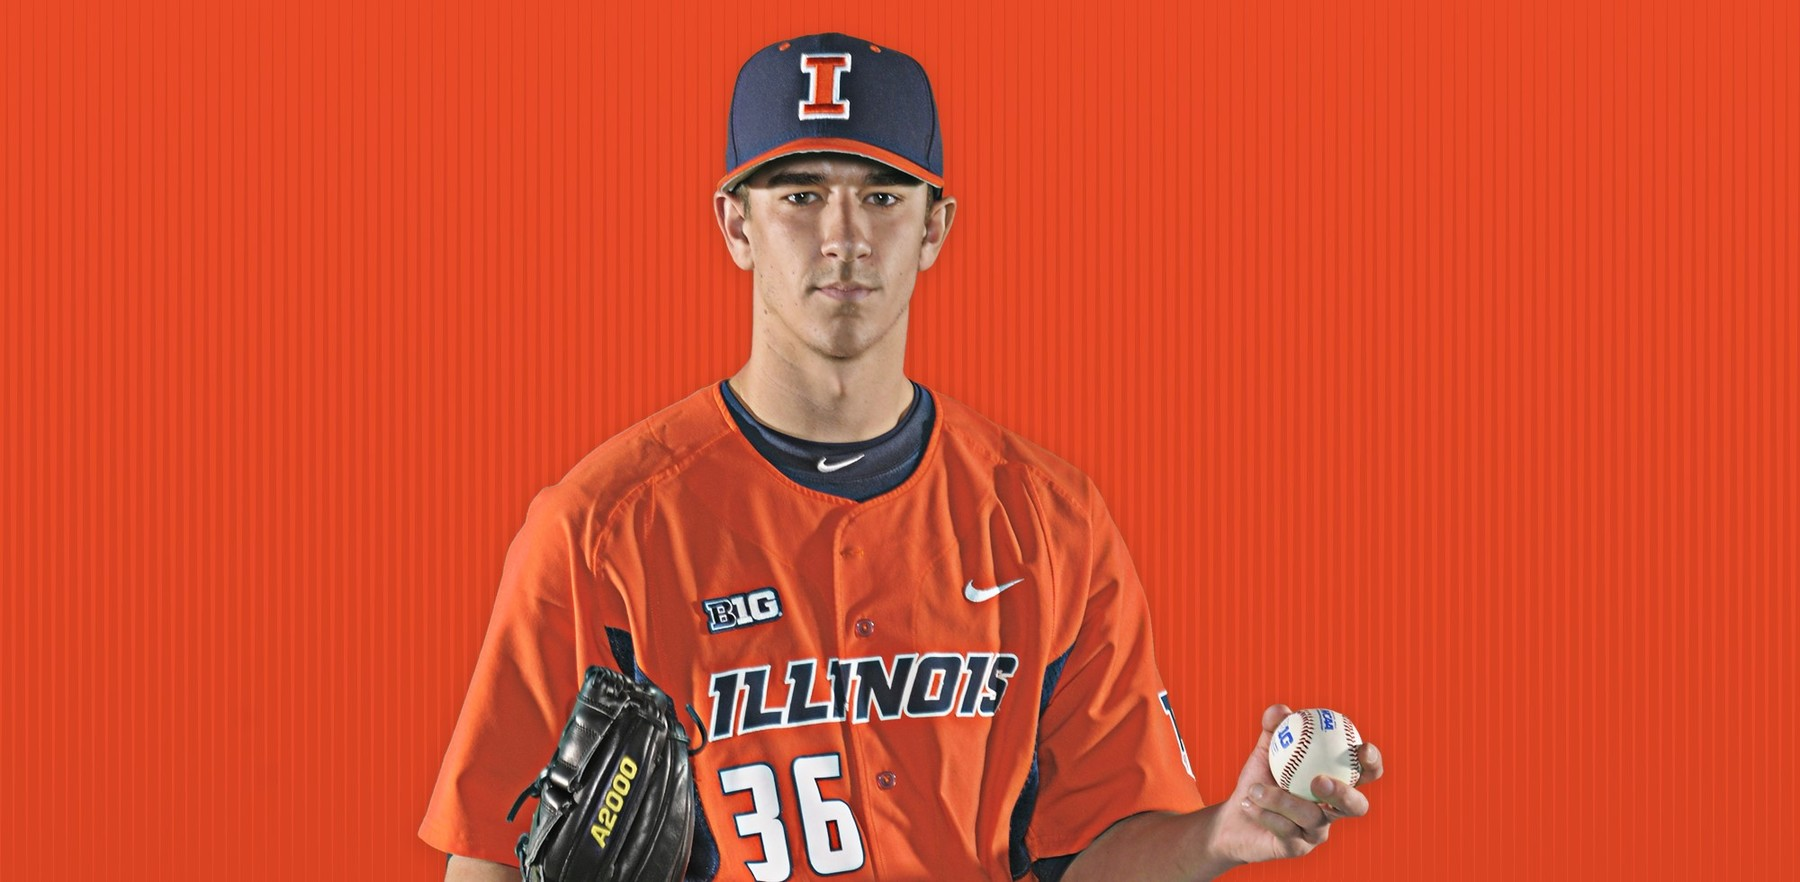 promotional image of Illini pitcher Doug Hayes from DIA